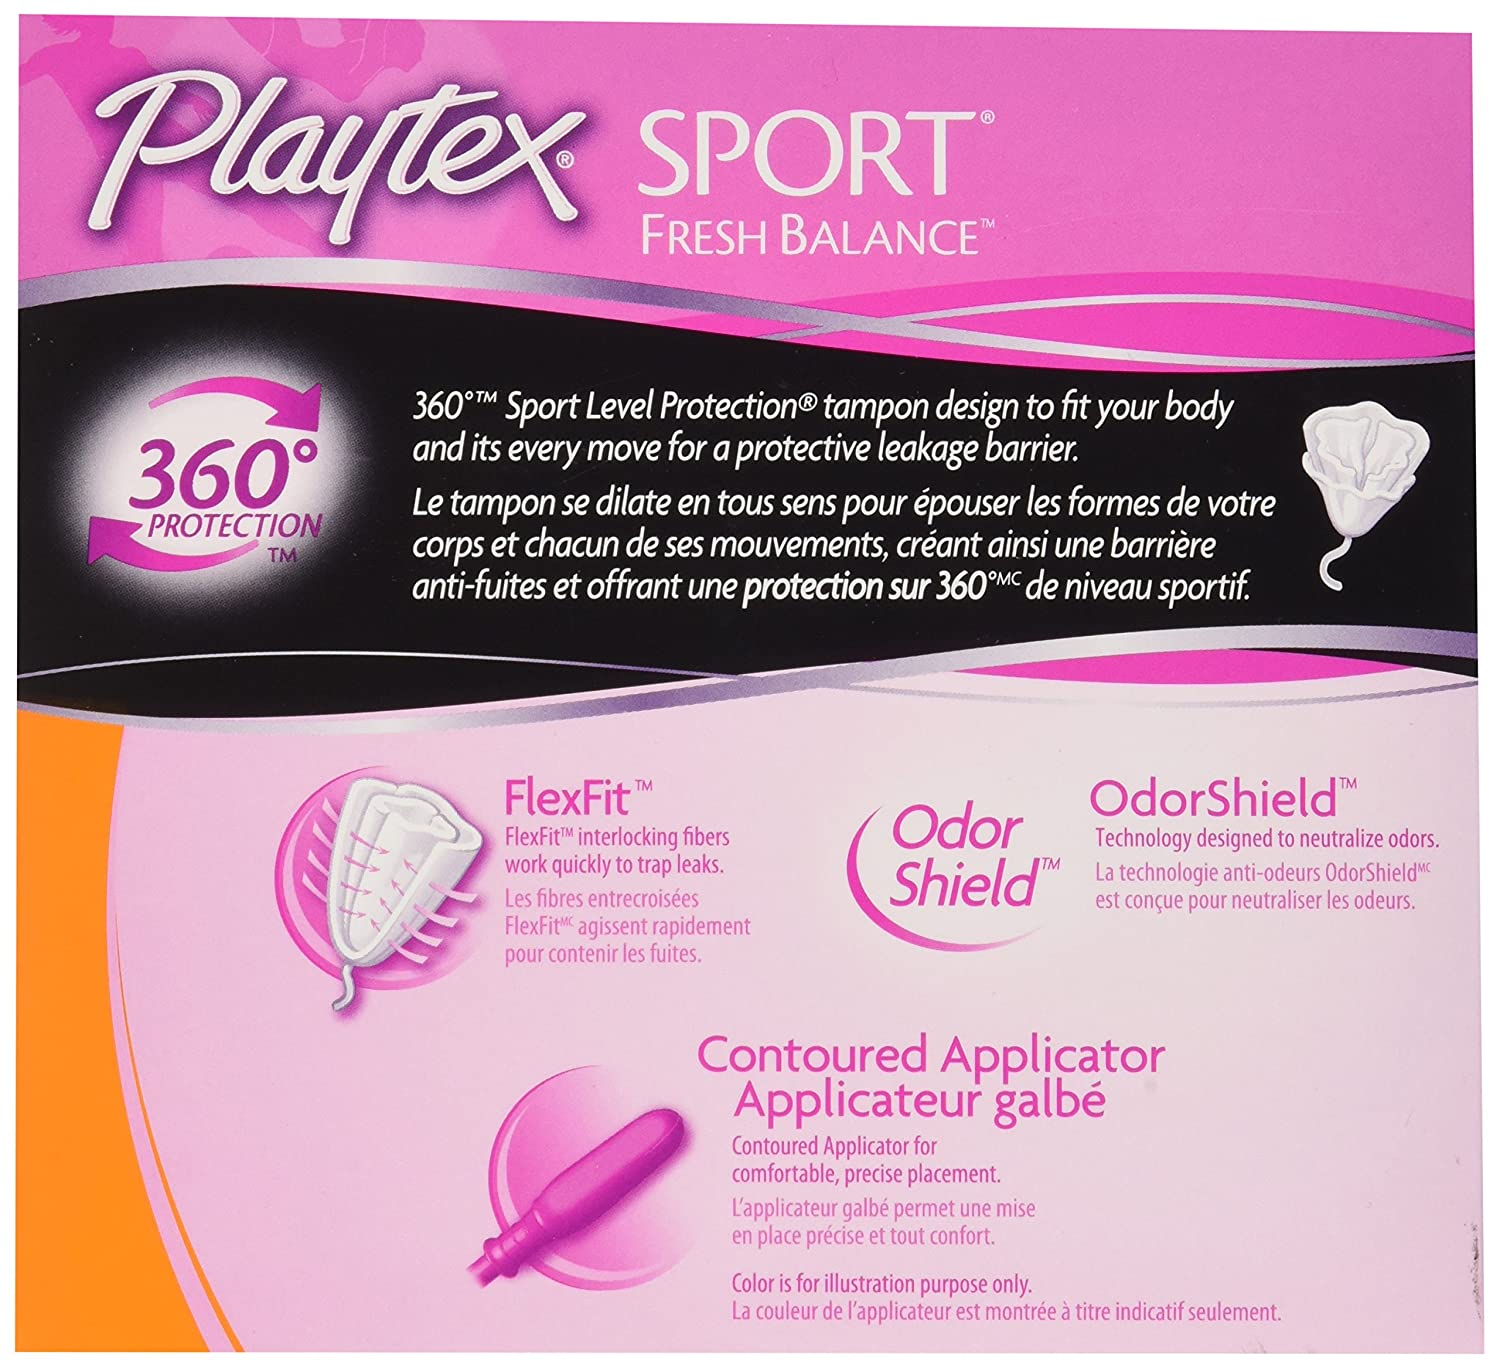 91be86851fe3e9 Amazon.com: Playtex Sport Fresh Balance Tampons with Odor Shield  Technology, Super, Scented - 32 Count: Health & Personal Care